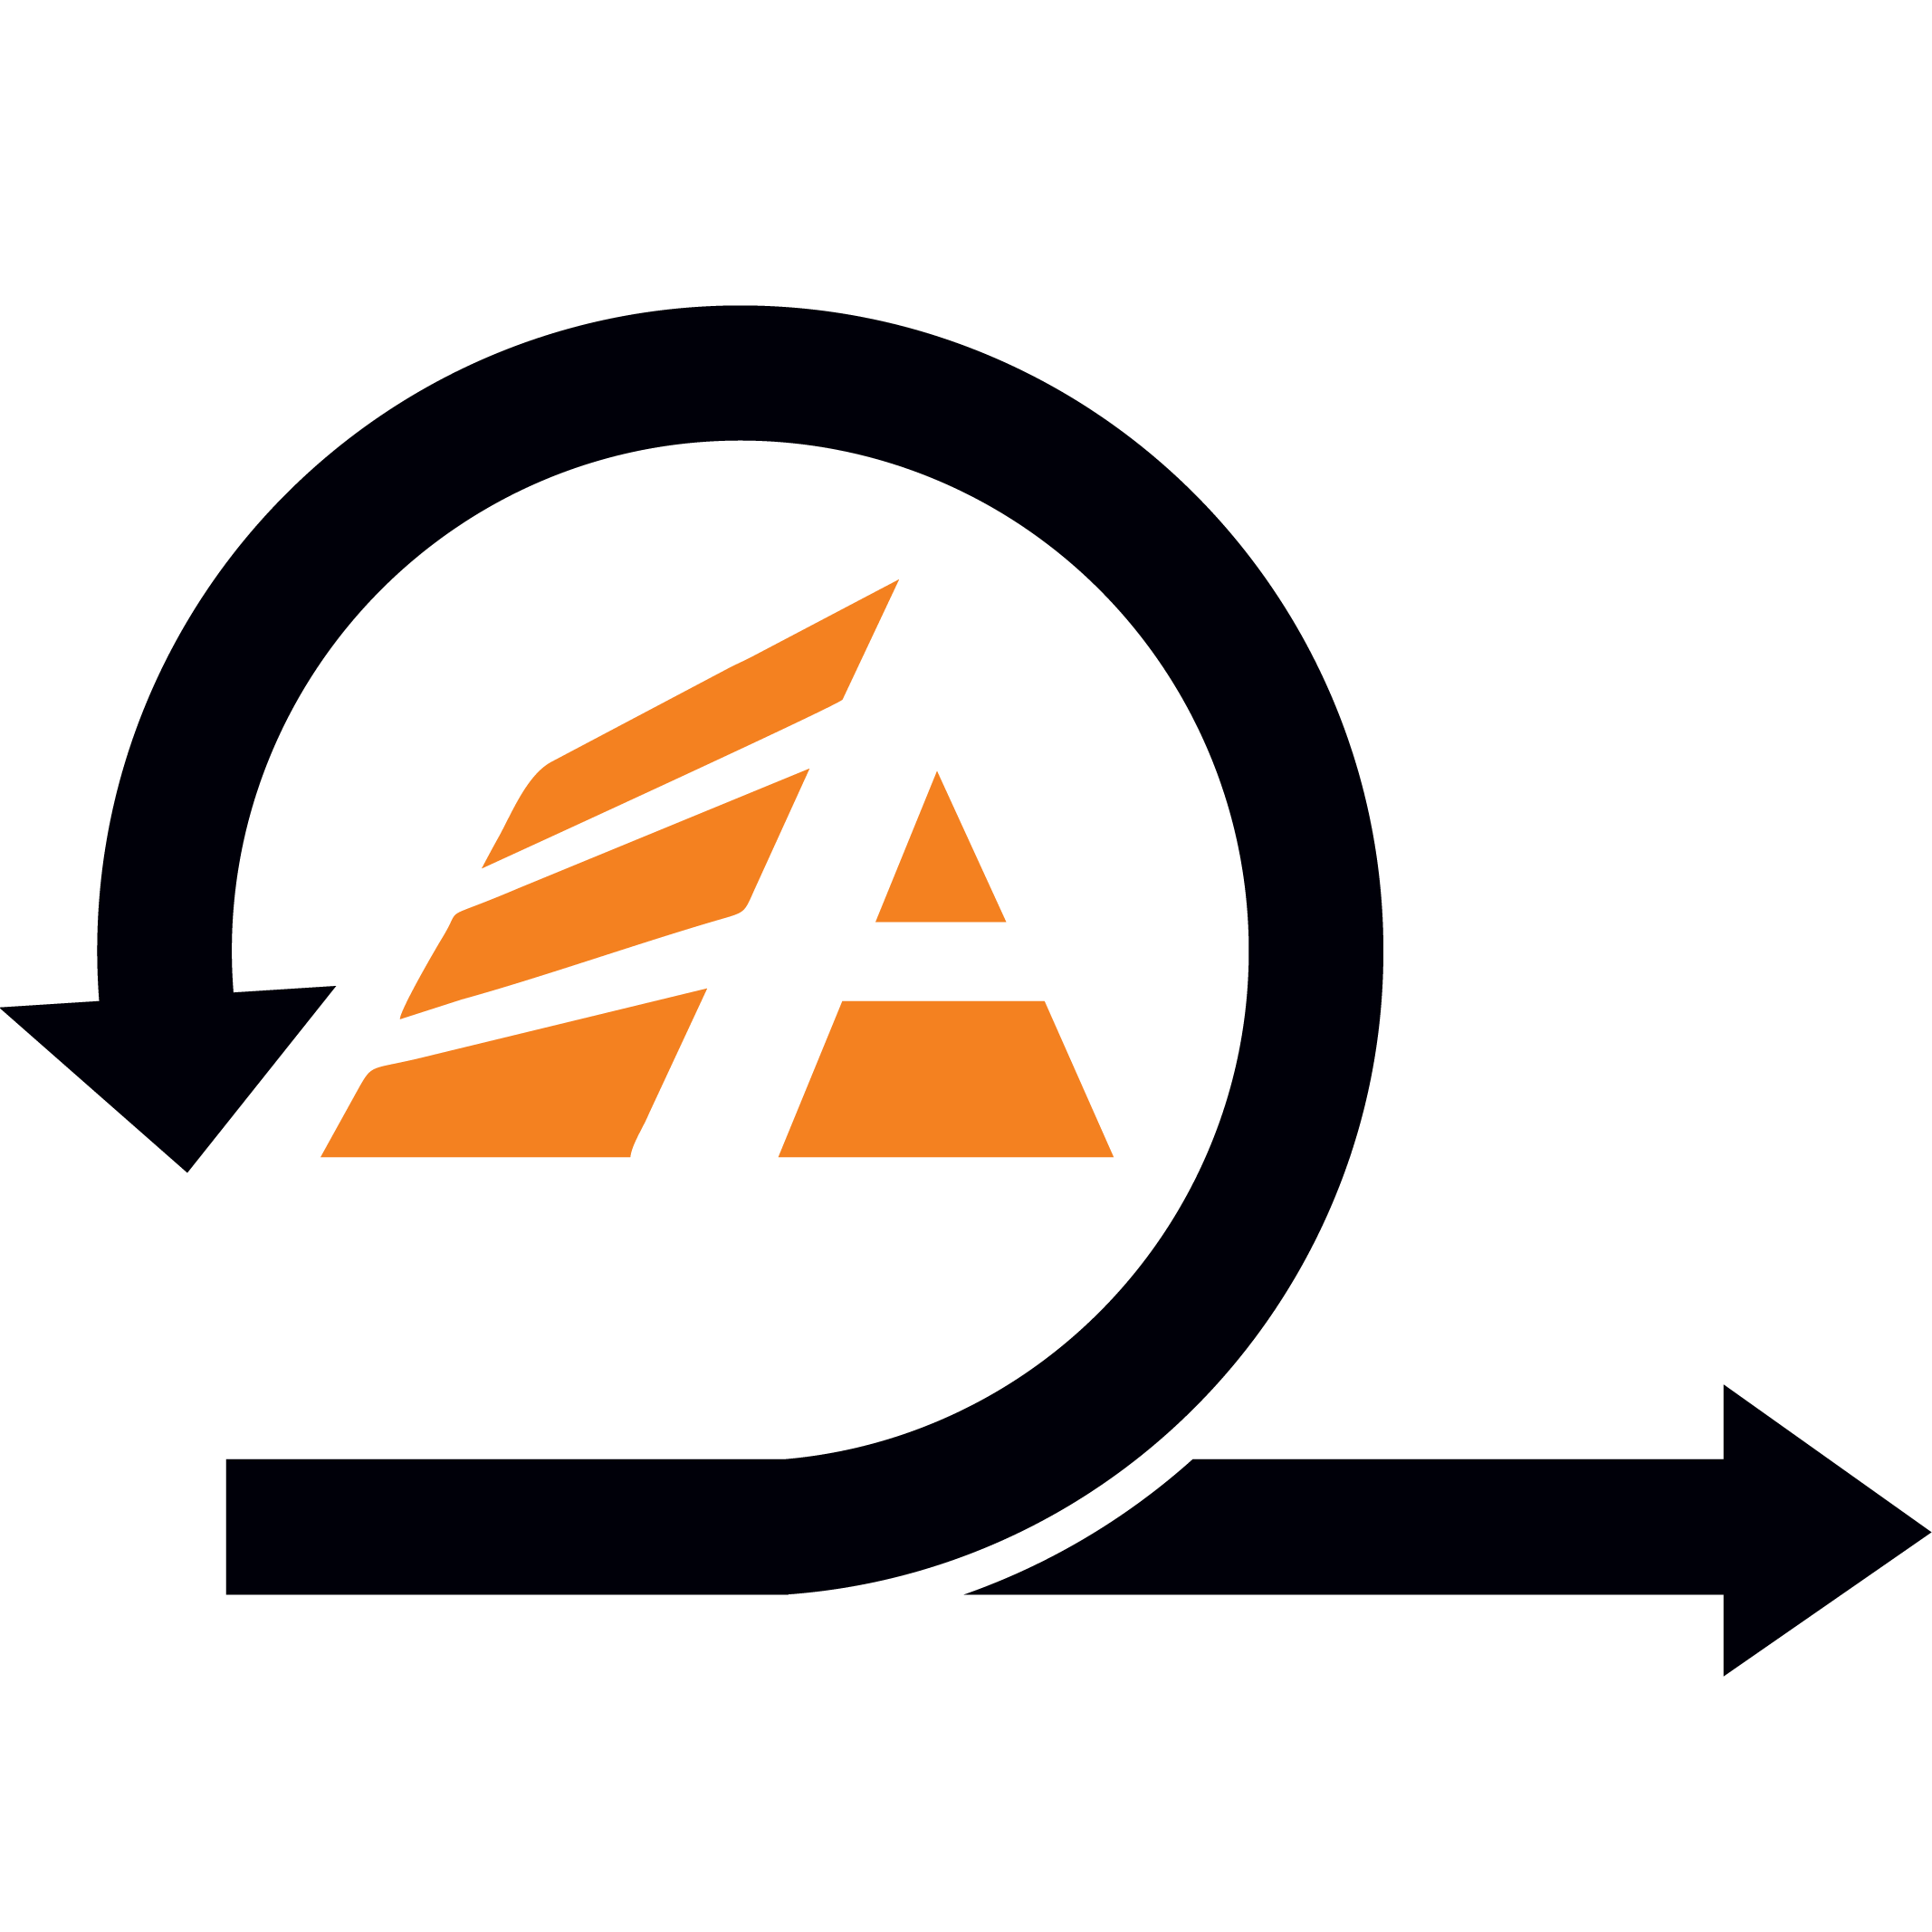 efficient agile logo